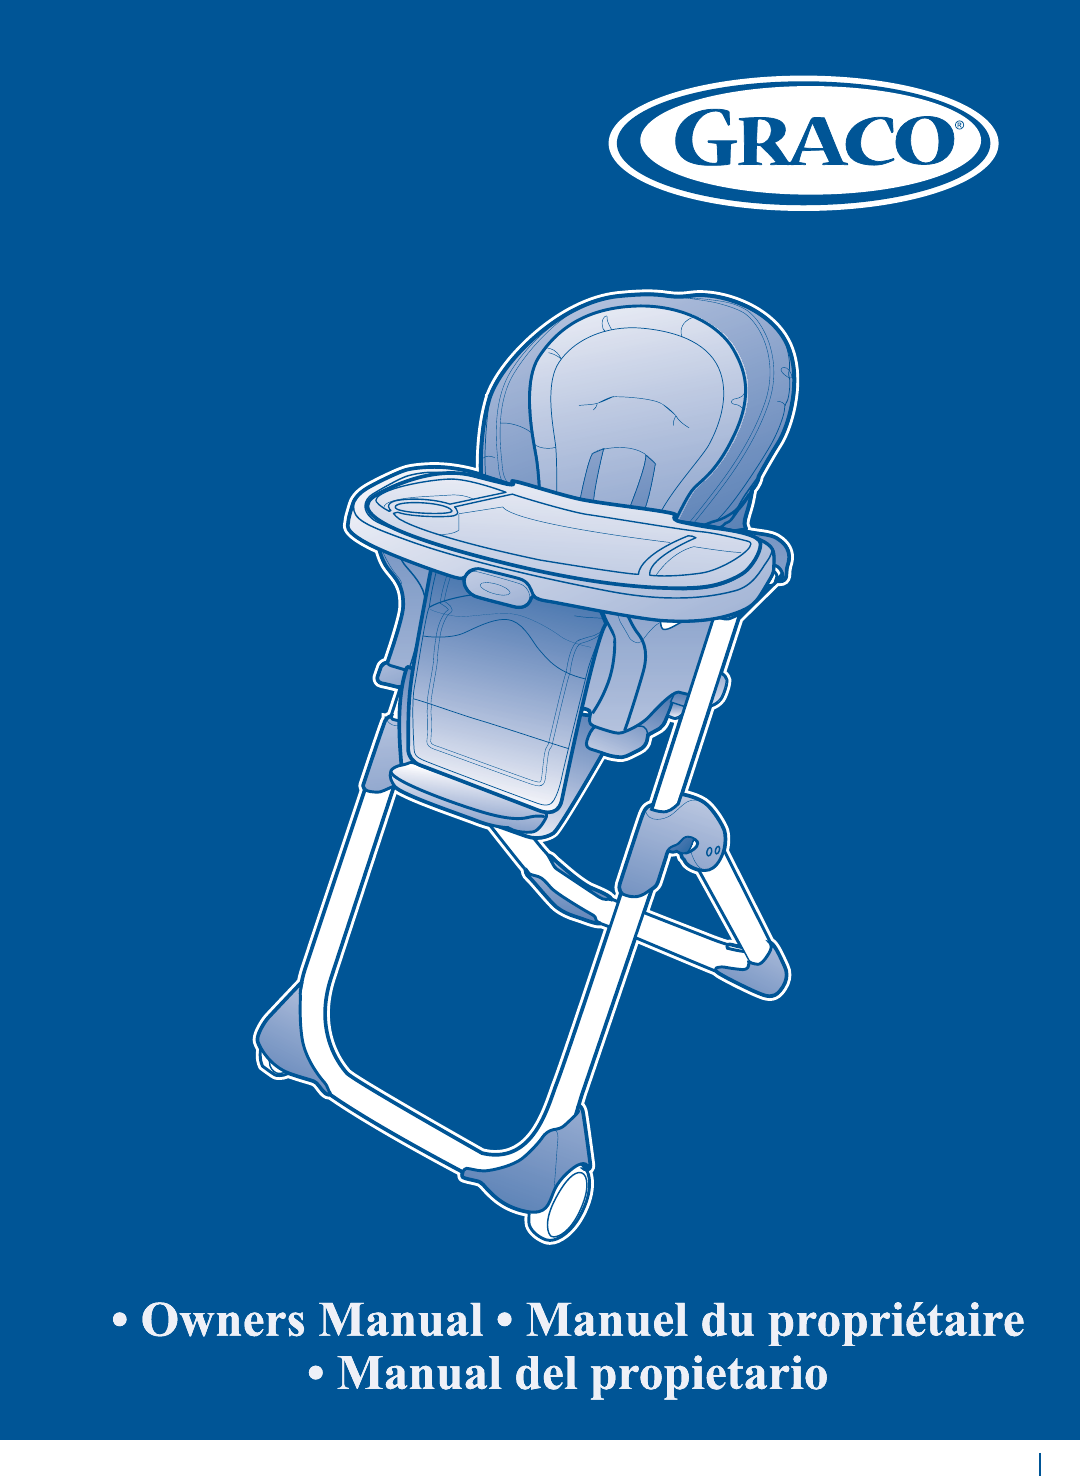 highchair recalls chair from money recall are chairs graco prompt story injured xxx walmart after high kids